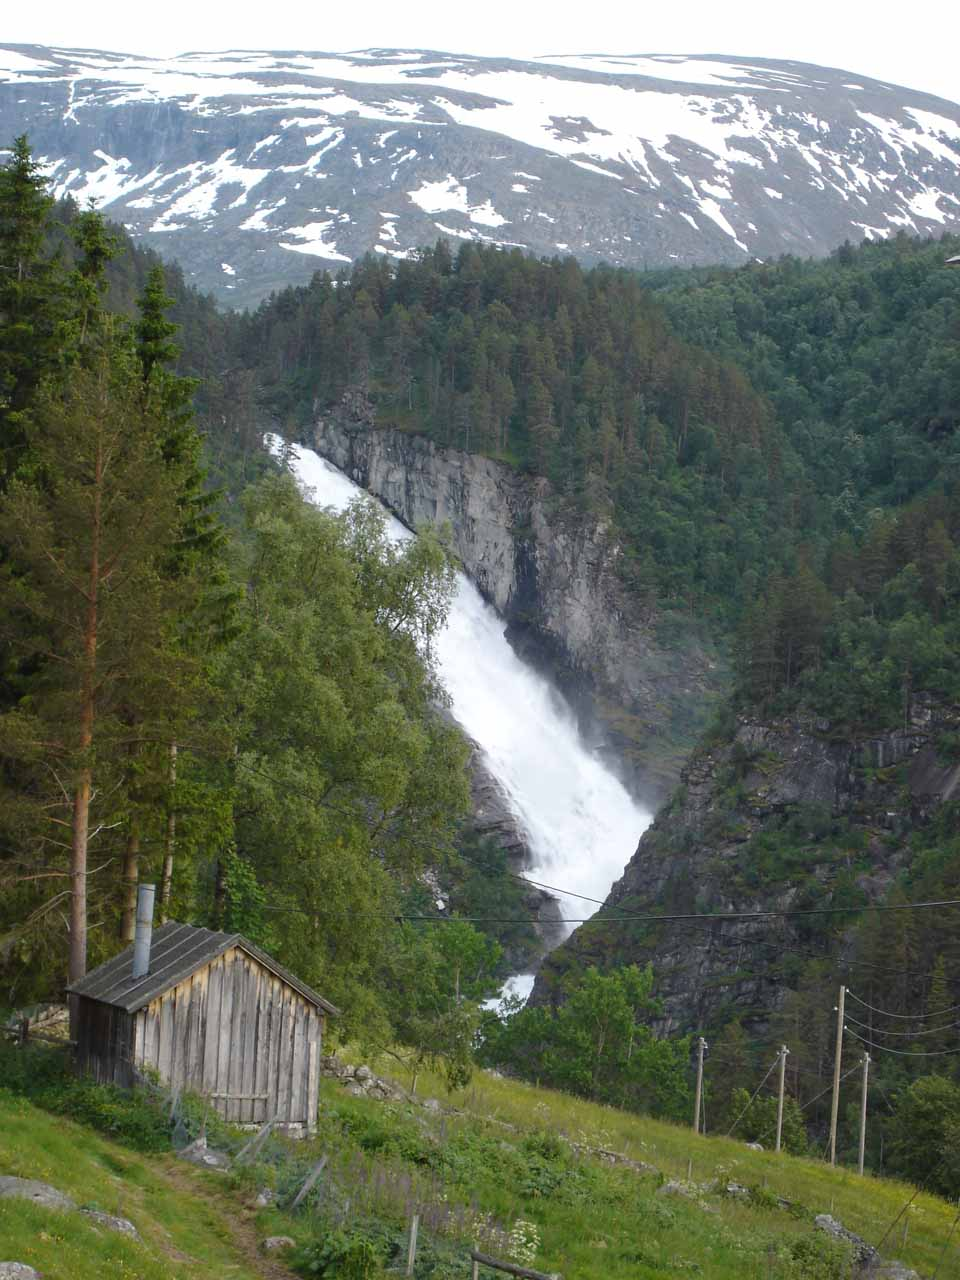 This was Reppdalsfossen or Reppfossen, which was the second of the Åmotan Waterfalls that we saw. This one was pretty easy to see, especially since we started from a car park for the Svøufossen walk